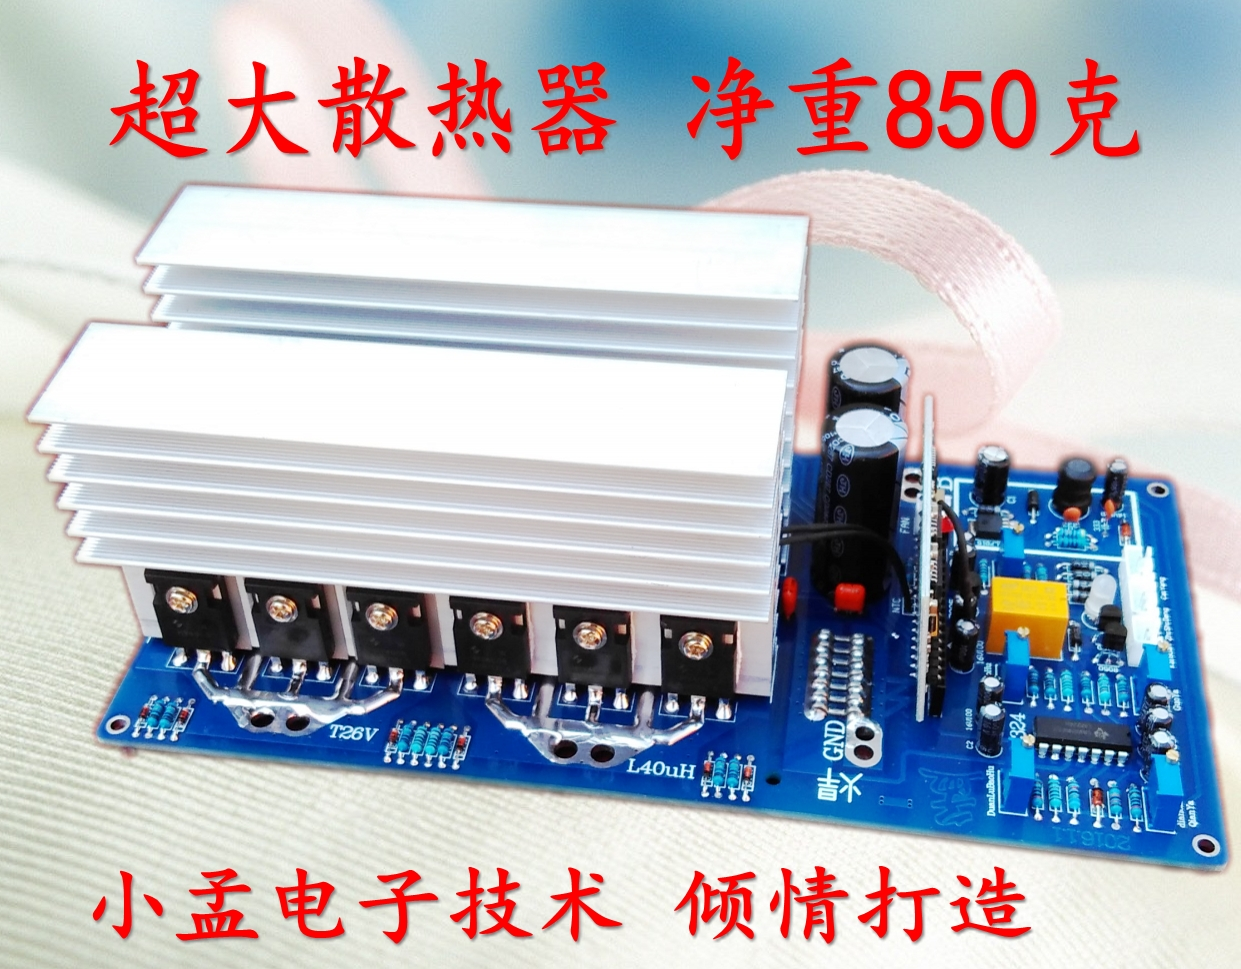 48V60V5KVA6KVA power frequency pure sine wave inverter plate drive plate, circuit board motherboard PCB motherboard mainpoint 1 4 1 2 3 8 e socket sockets set cr v torx star bit combination drive socket nuts set for auto car repair hand tool